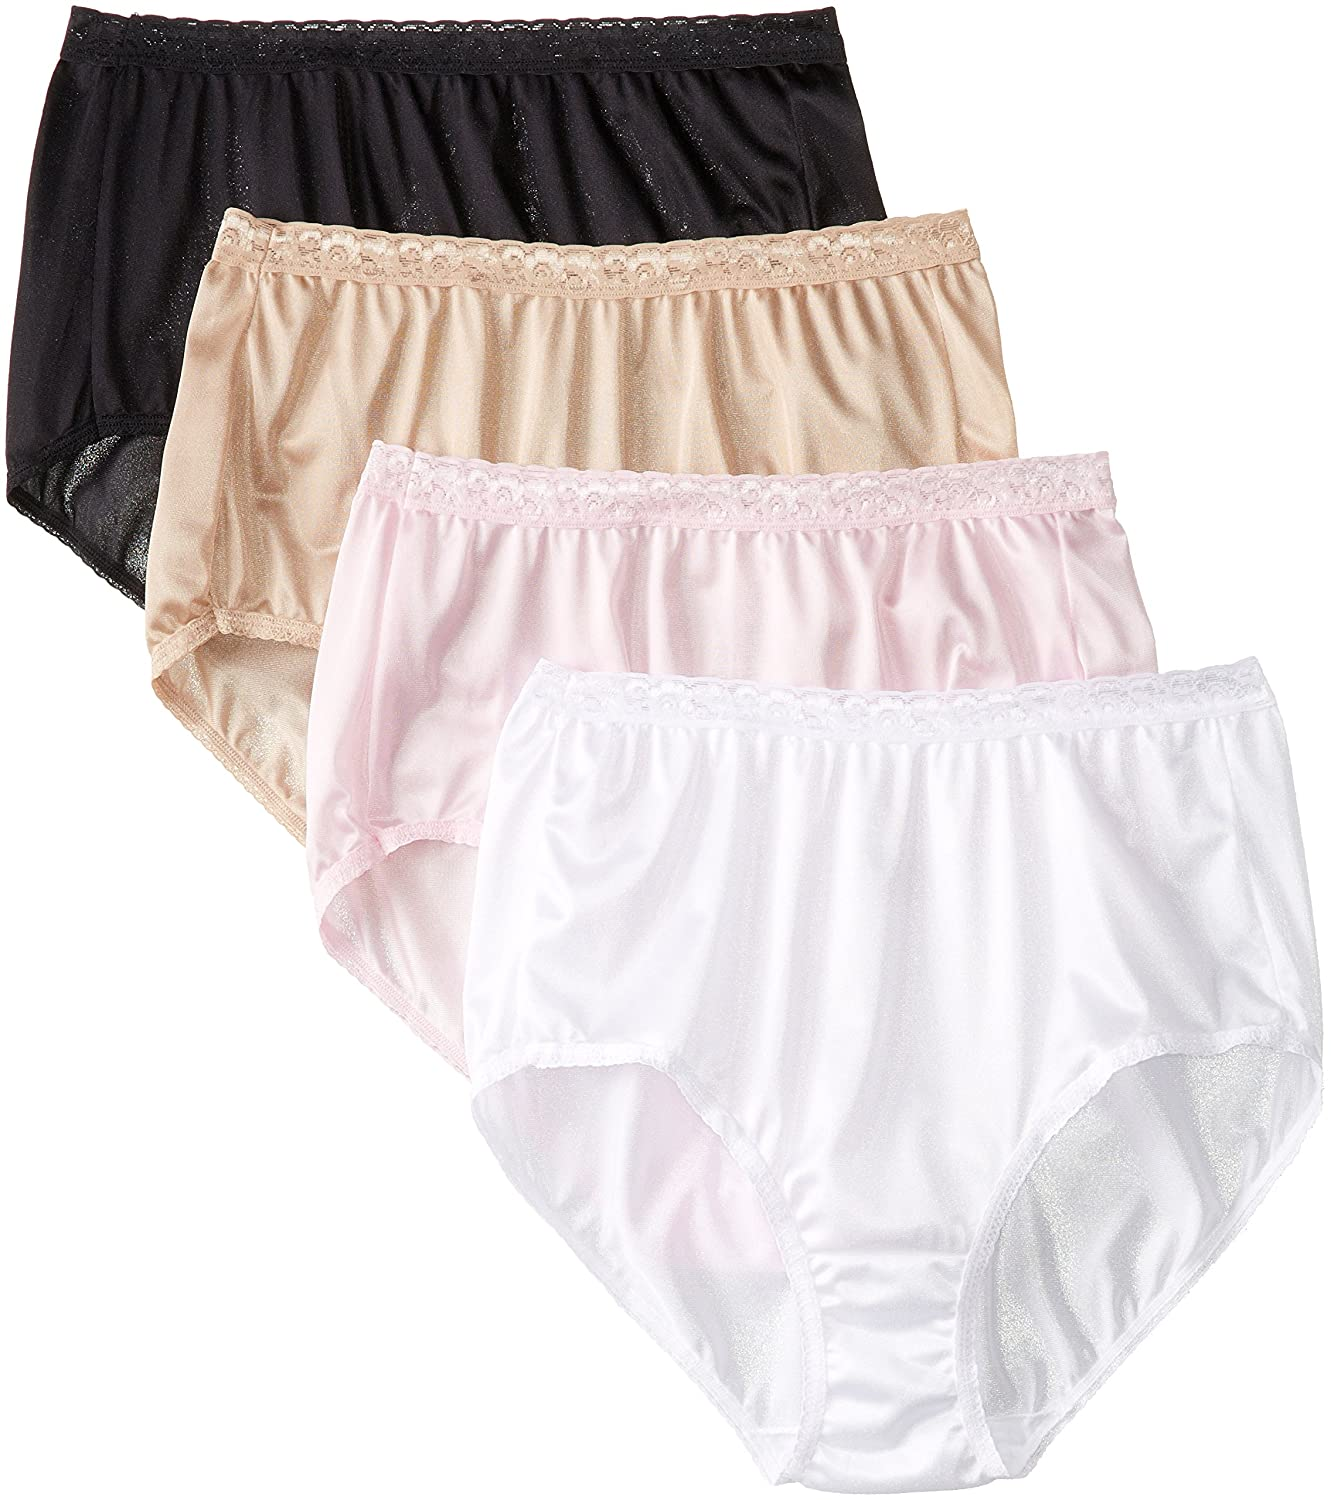 Just My Size Women's 4 Pack Nylon Brief Panty Just My Size IA- Panties 0601P4